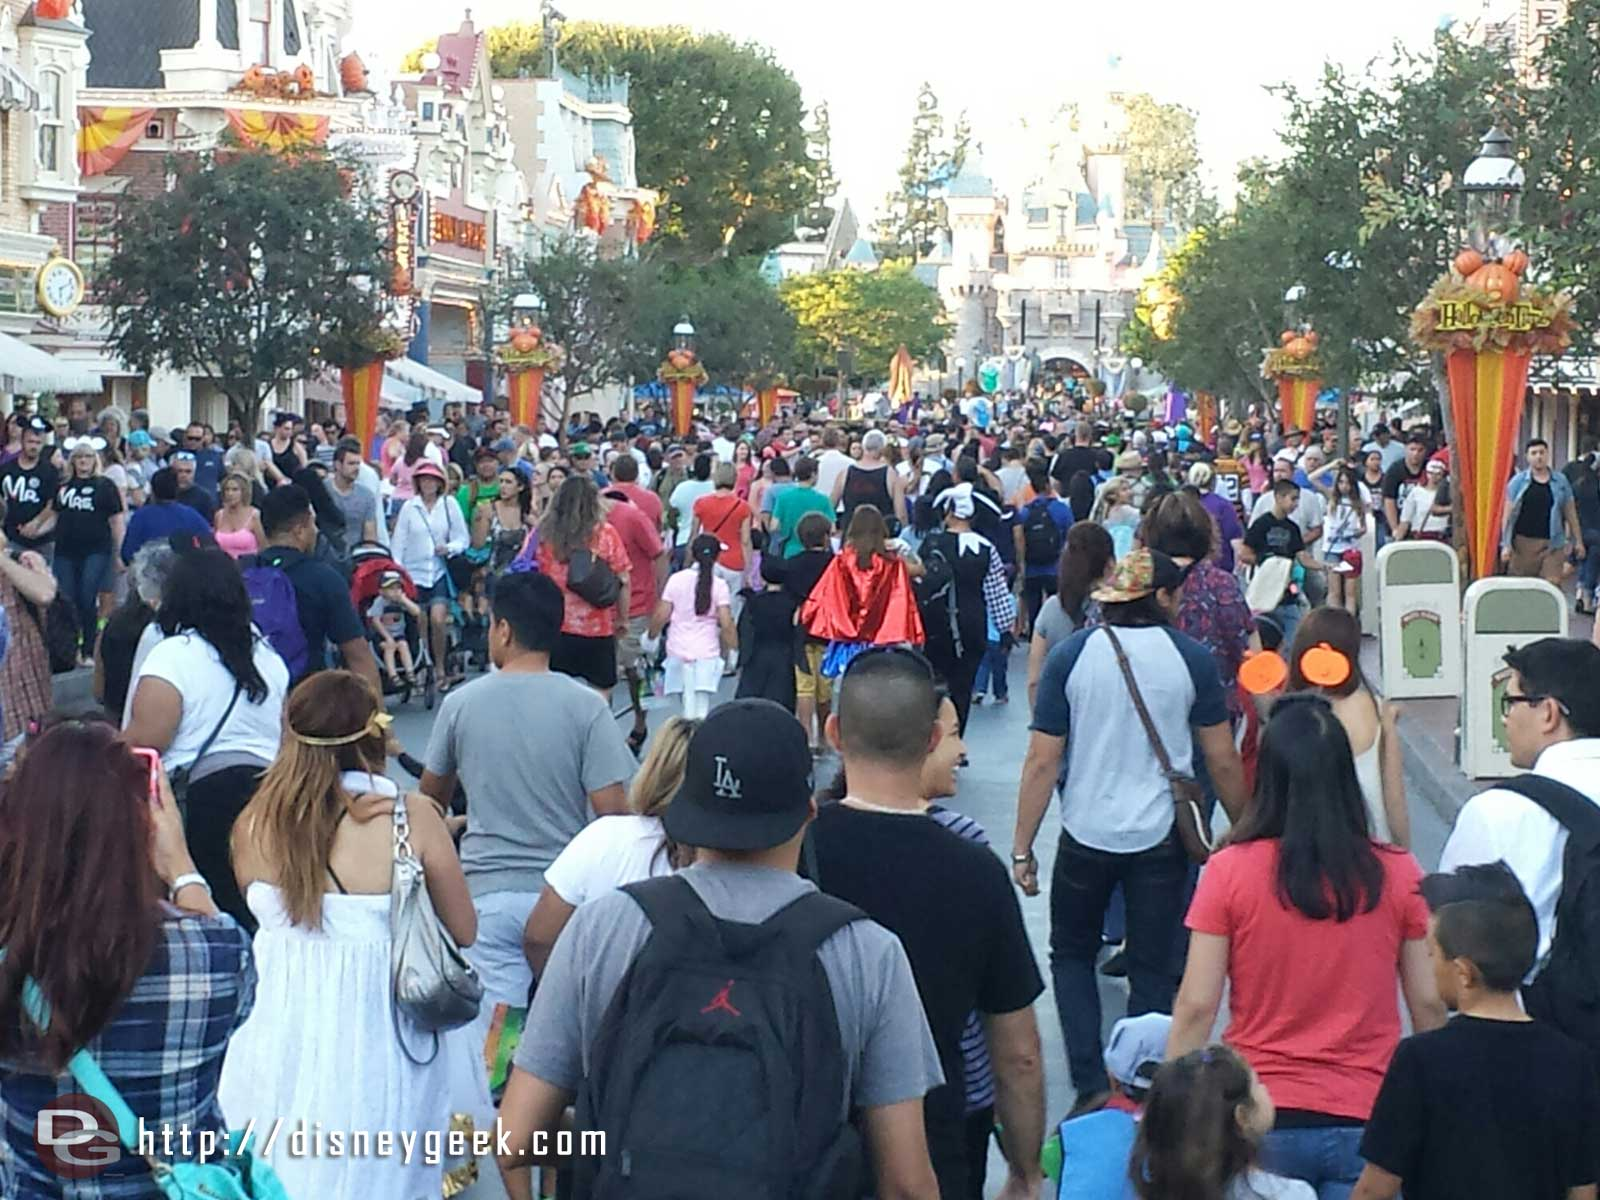 Main Street USA as day guests are filtering out and party guests are arriving #Disneyland